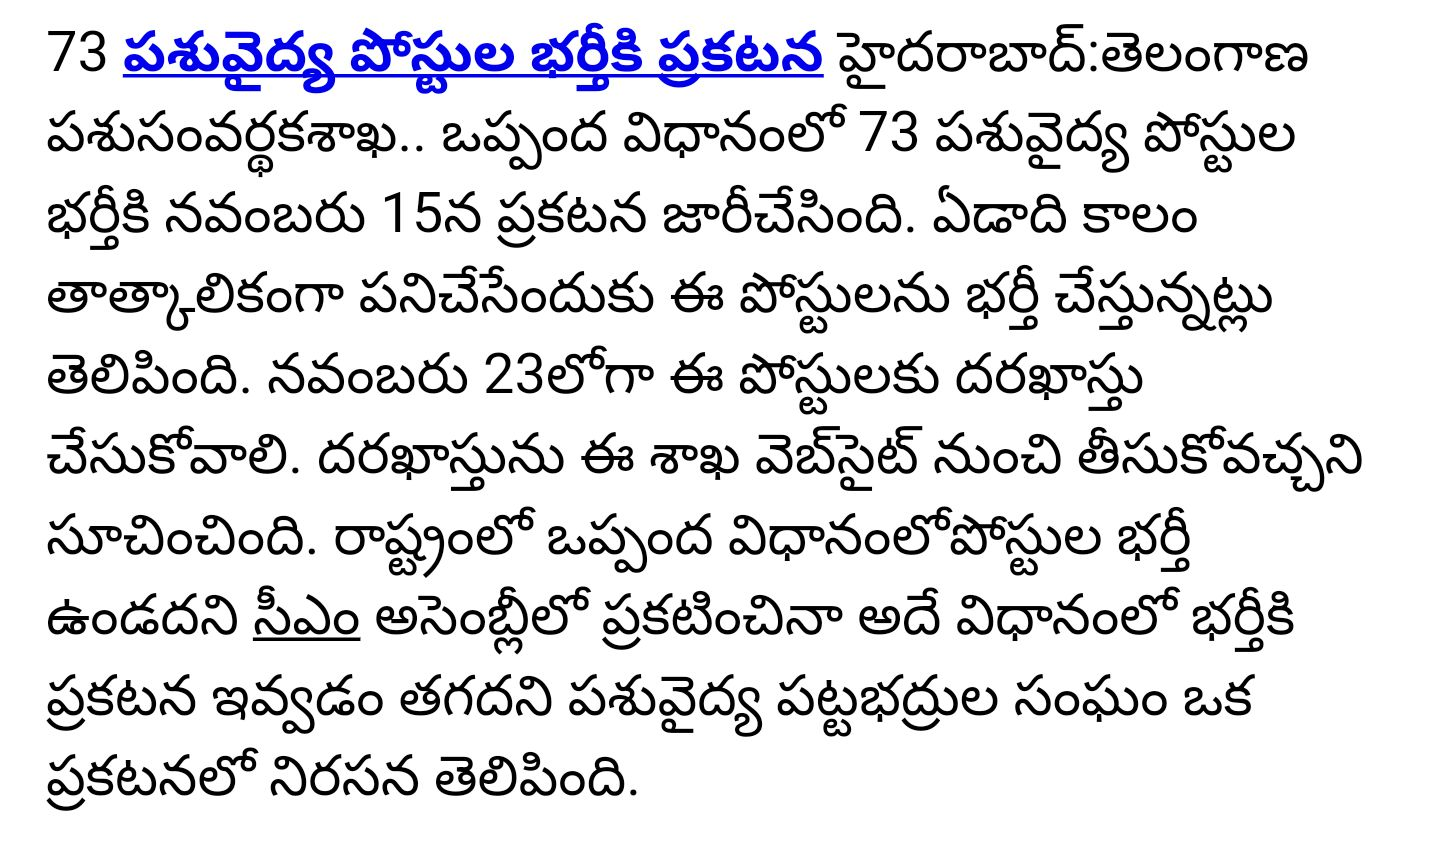 TS Veterinary Assistant Surgeon Application, Notification @ gahd.nic.in